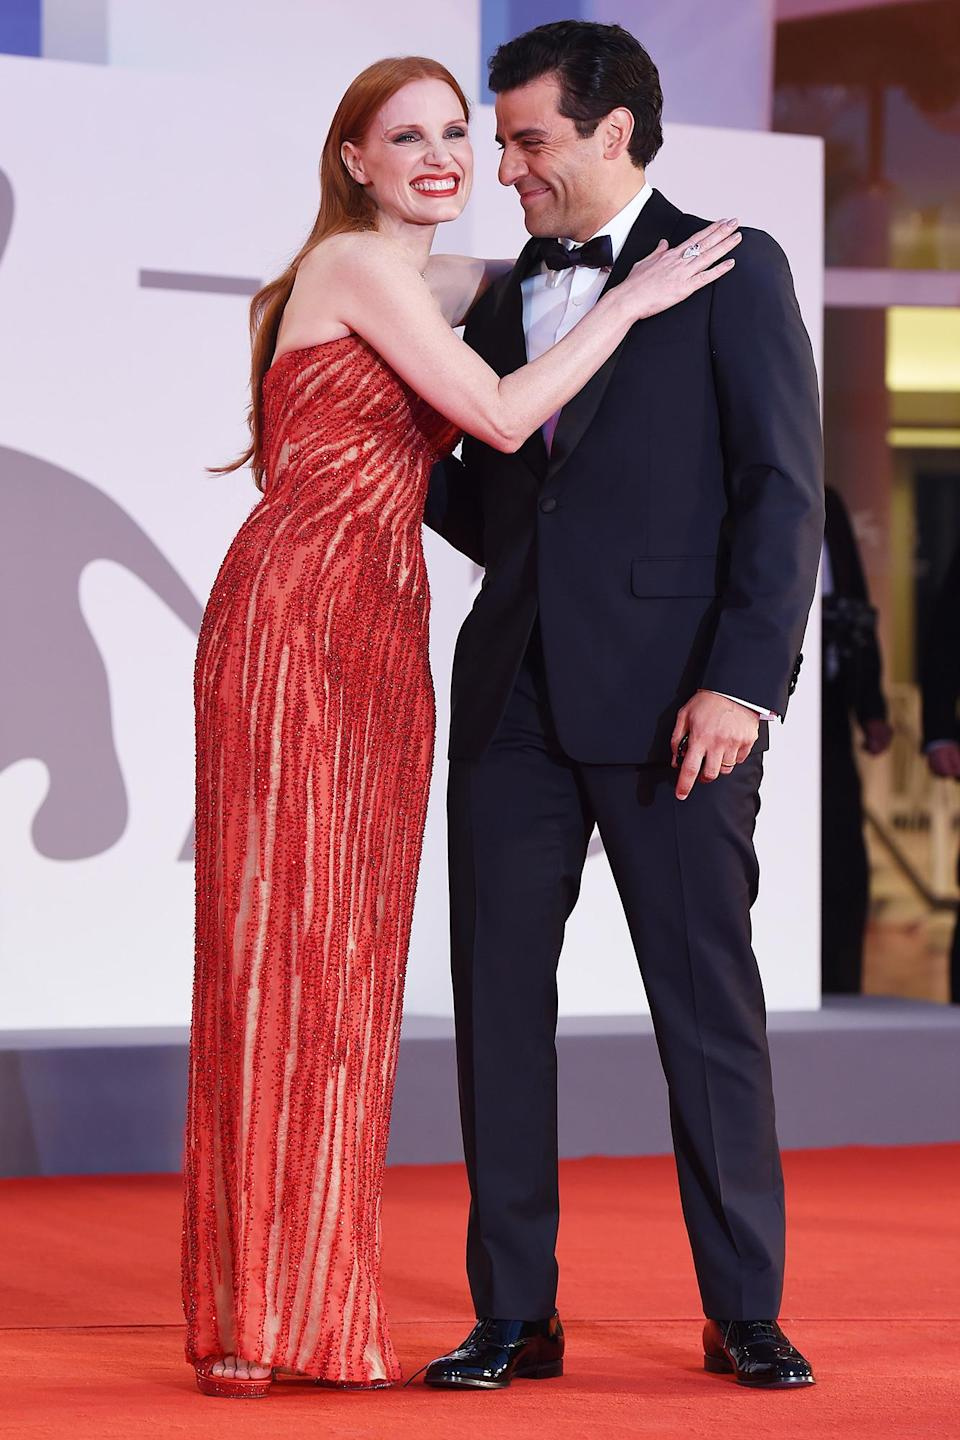 """<p>On Sept. 4, Jessica Chastain and Oscar Isaac hit the red carpet at the 2021 Venice Film Festival for the premiere of <em><a href=""""https://www.youtube.com/watch?v=mRuVWHnQlV8"""" rel=""""nofollow noopener"""" target=""""_blank"""" data-ylk=""""slk:Scenes of a Marriage"""" class=""""link rapid-noclick-resp"""">Scenes of a Marriage</a>.</em></p>"""